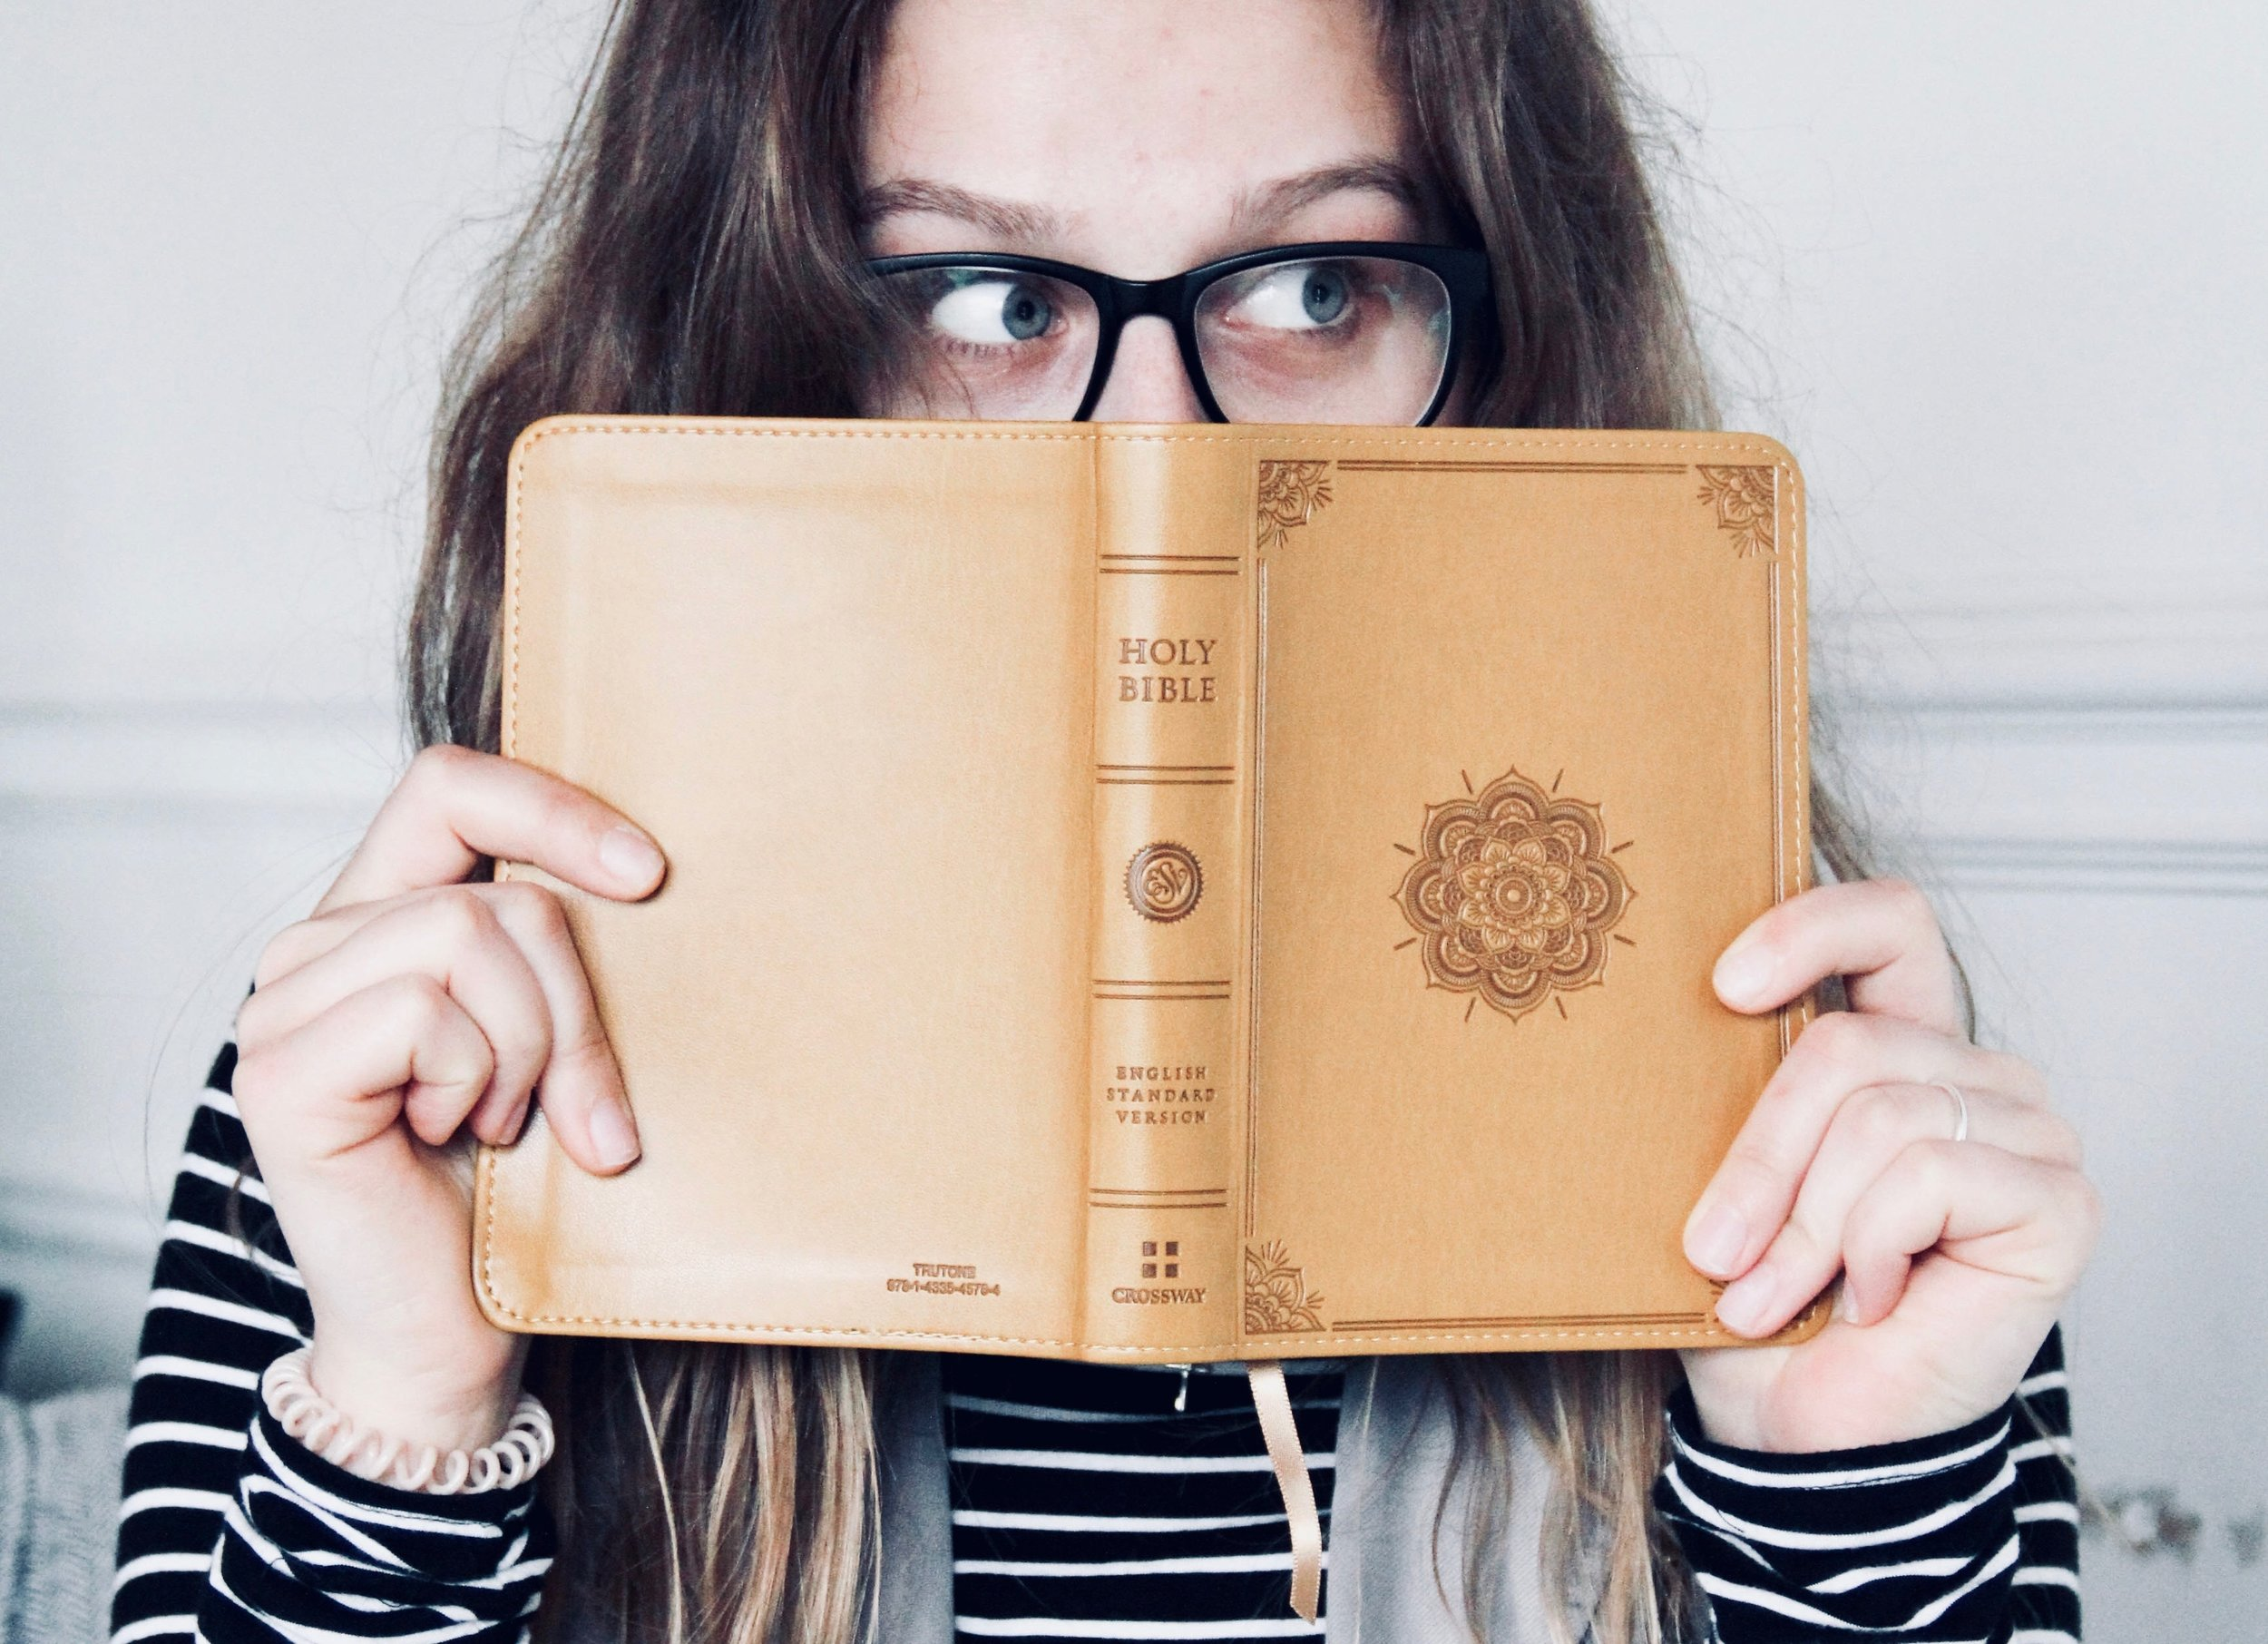 3 Reasons We Don't Go to Church When We're Feeling Discouraged - A new understanding of our emotional and mental distress and how God really sees our story